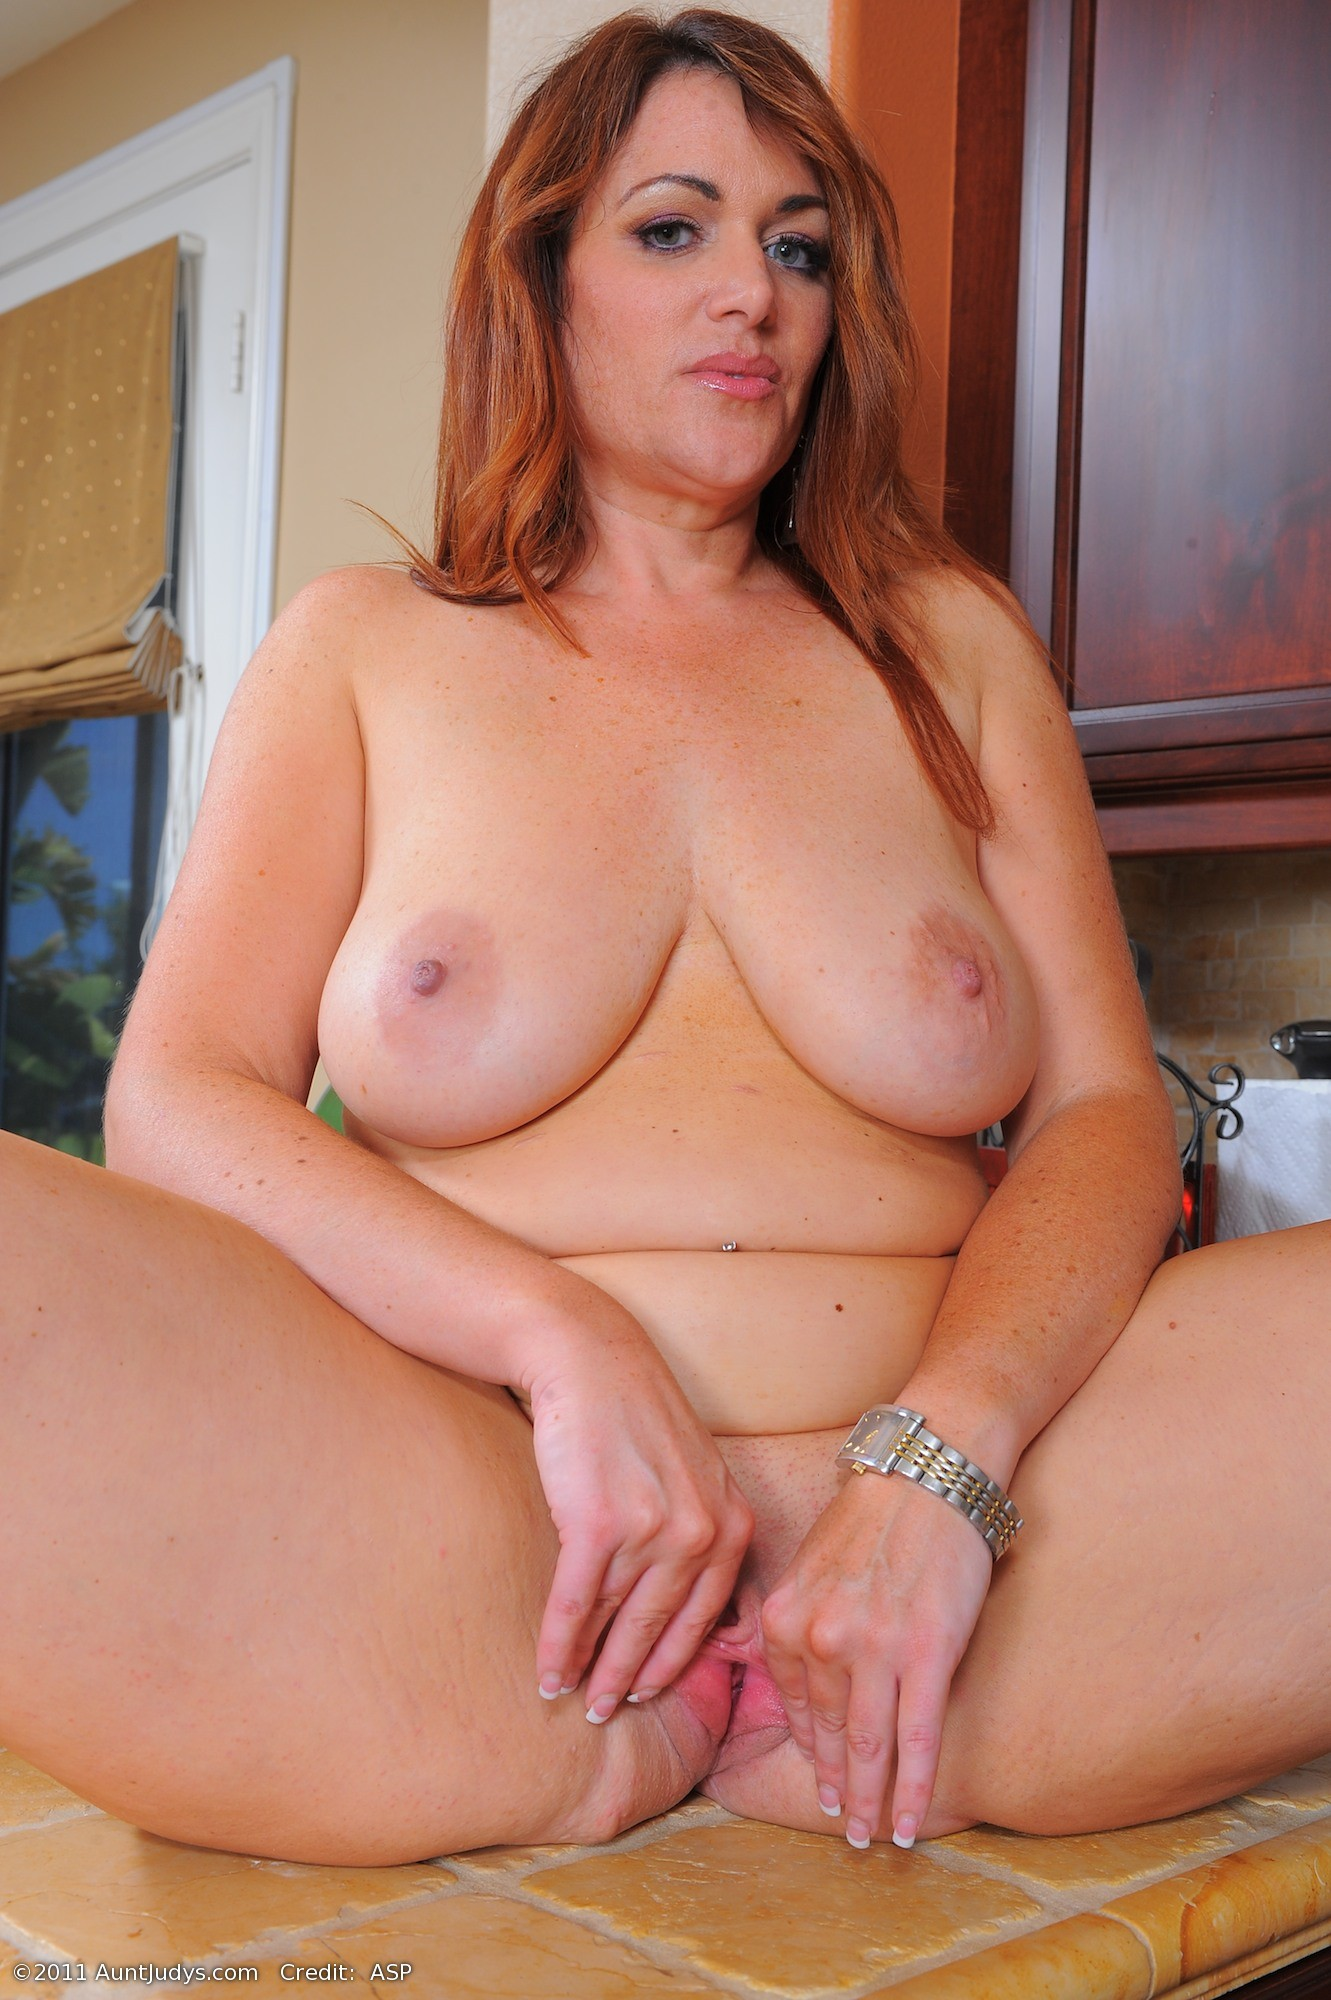 Regret, Hefty horny mature women